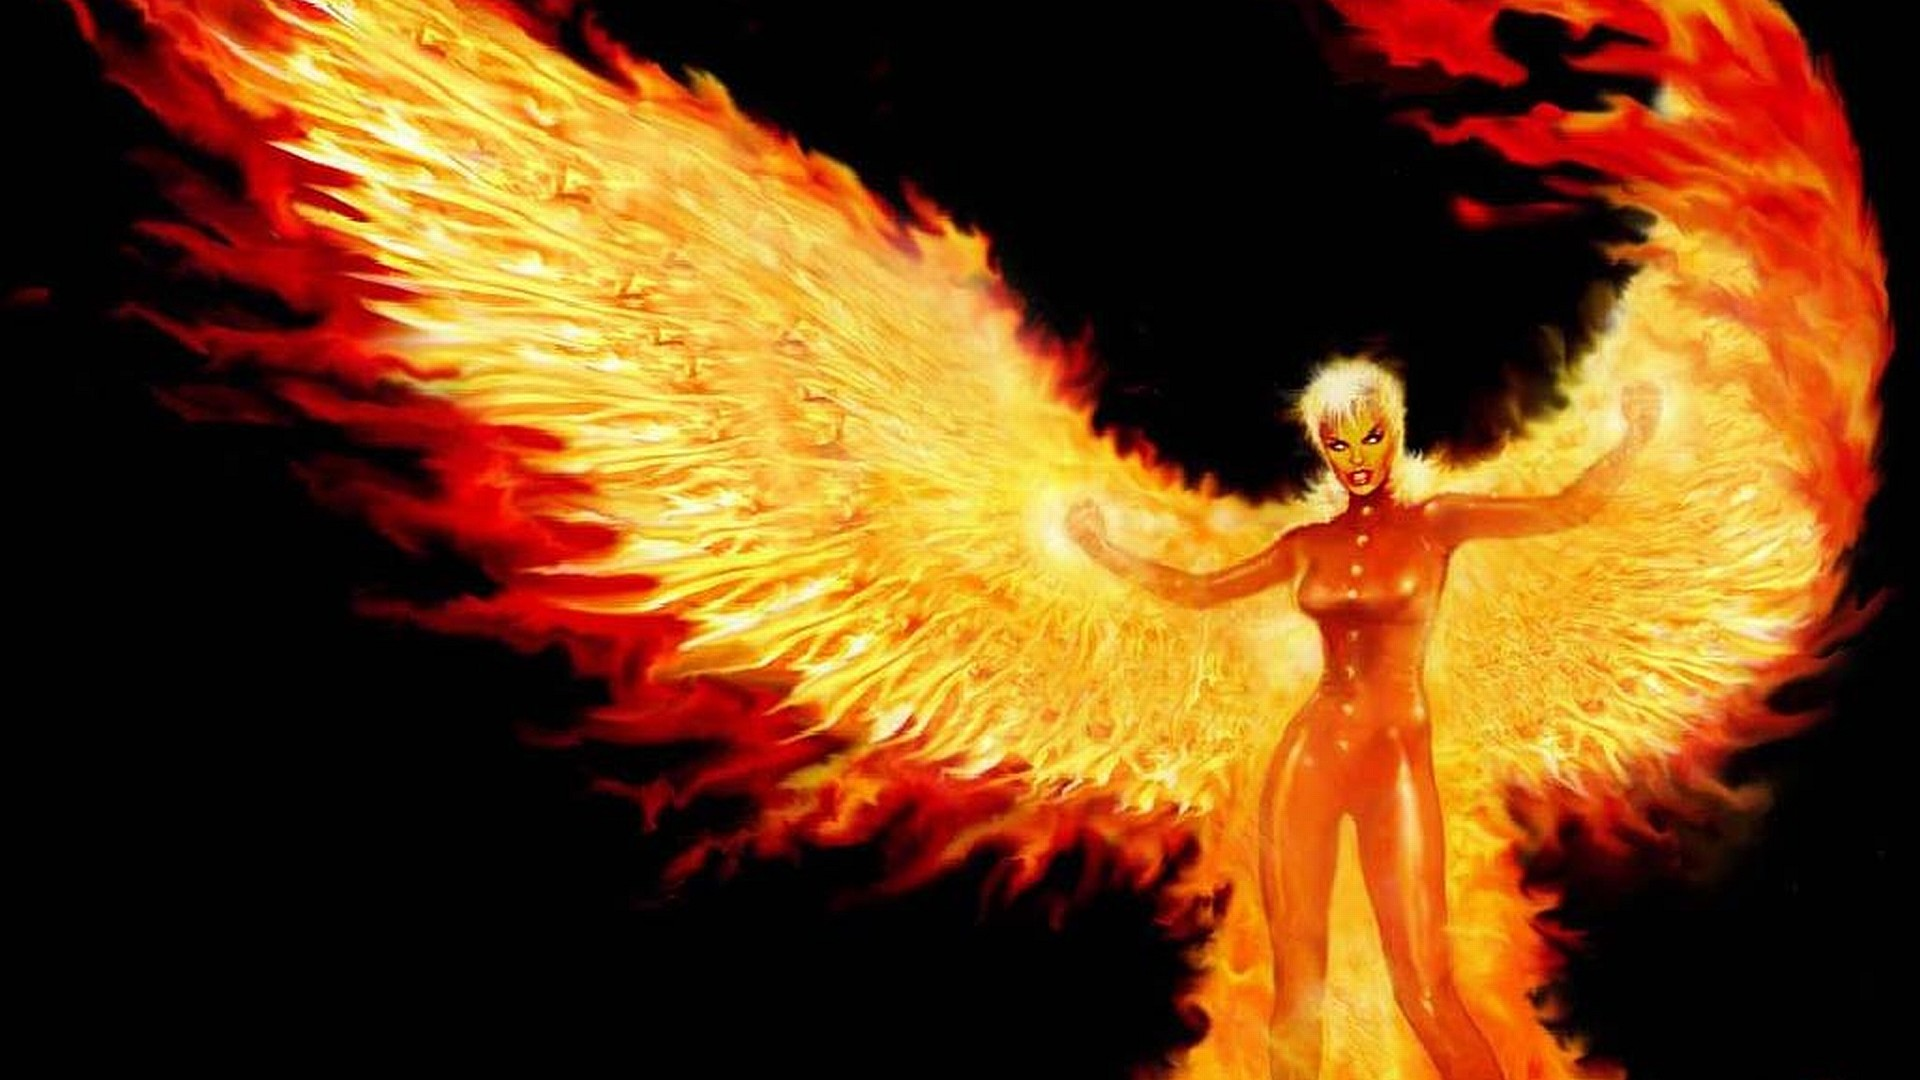 1920x1080 Phoenix Wallpapers, Phoenix Wallpapers in Full HD |  px, by Eun  Hayashi